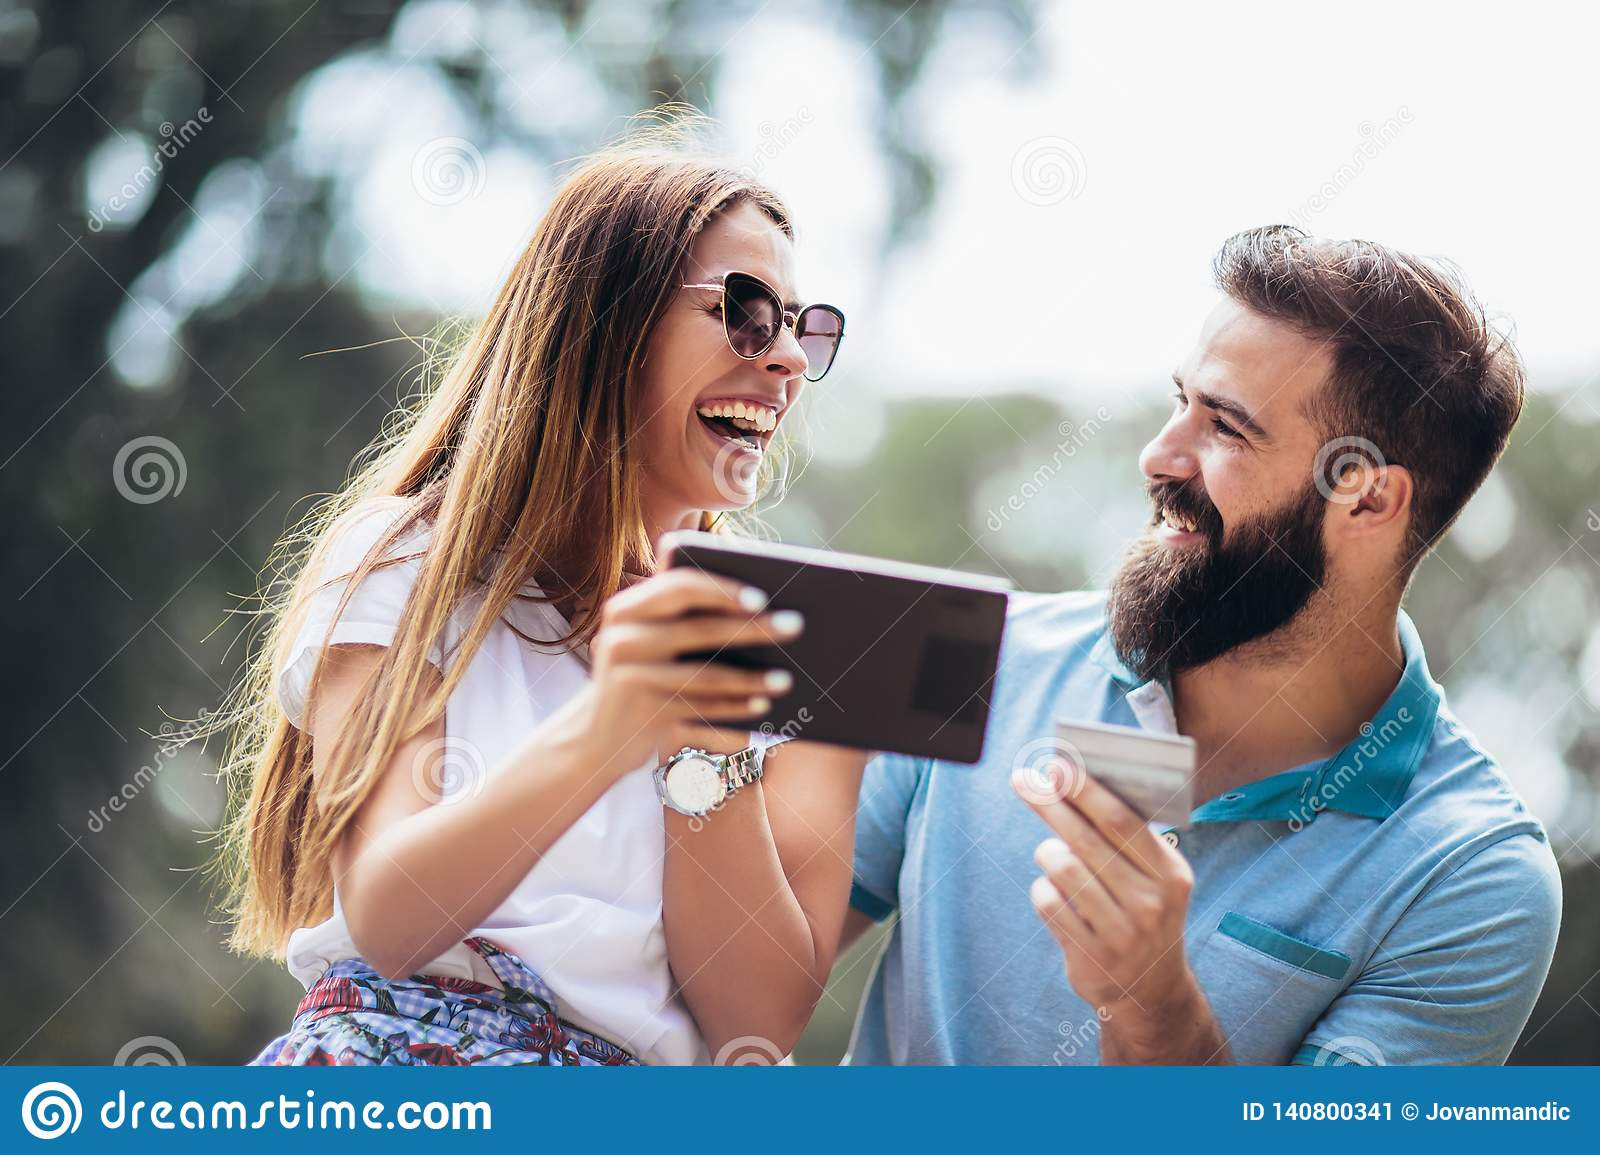 Young couple sitting on a park bench and uses a digital tablet for online shopping